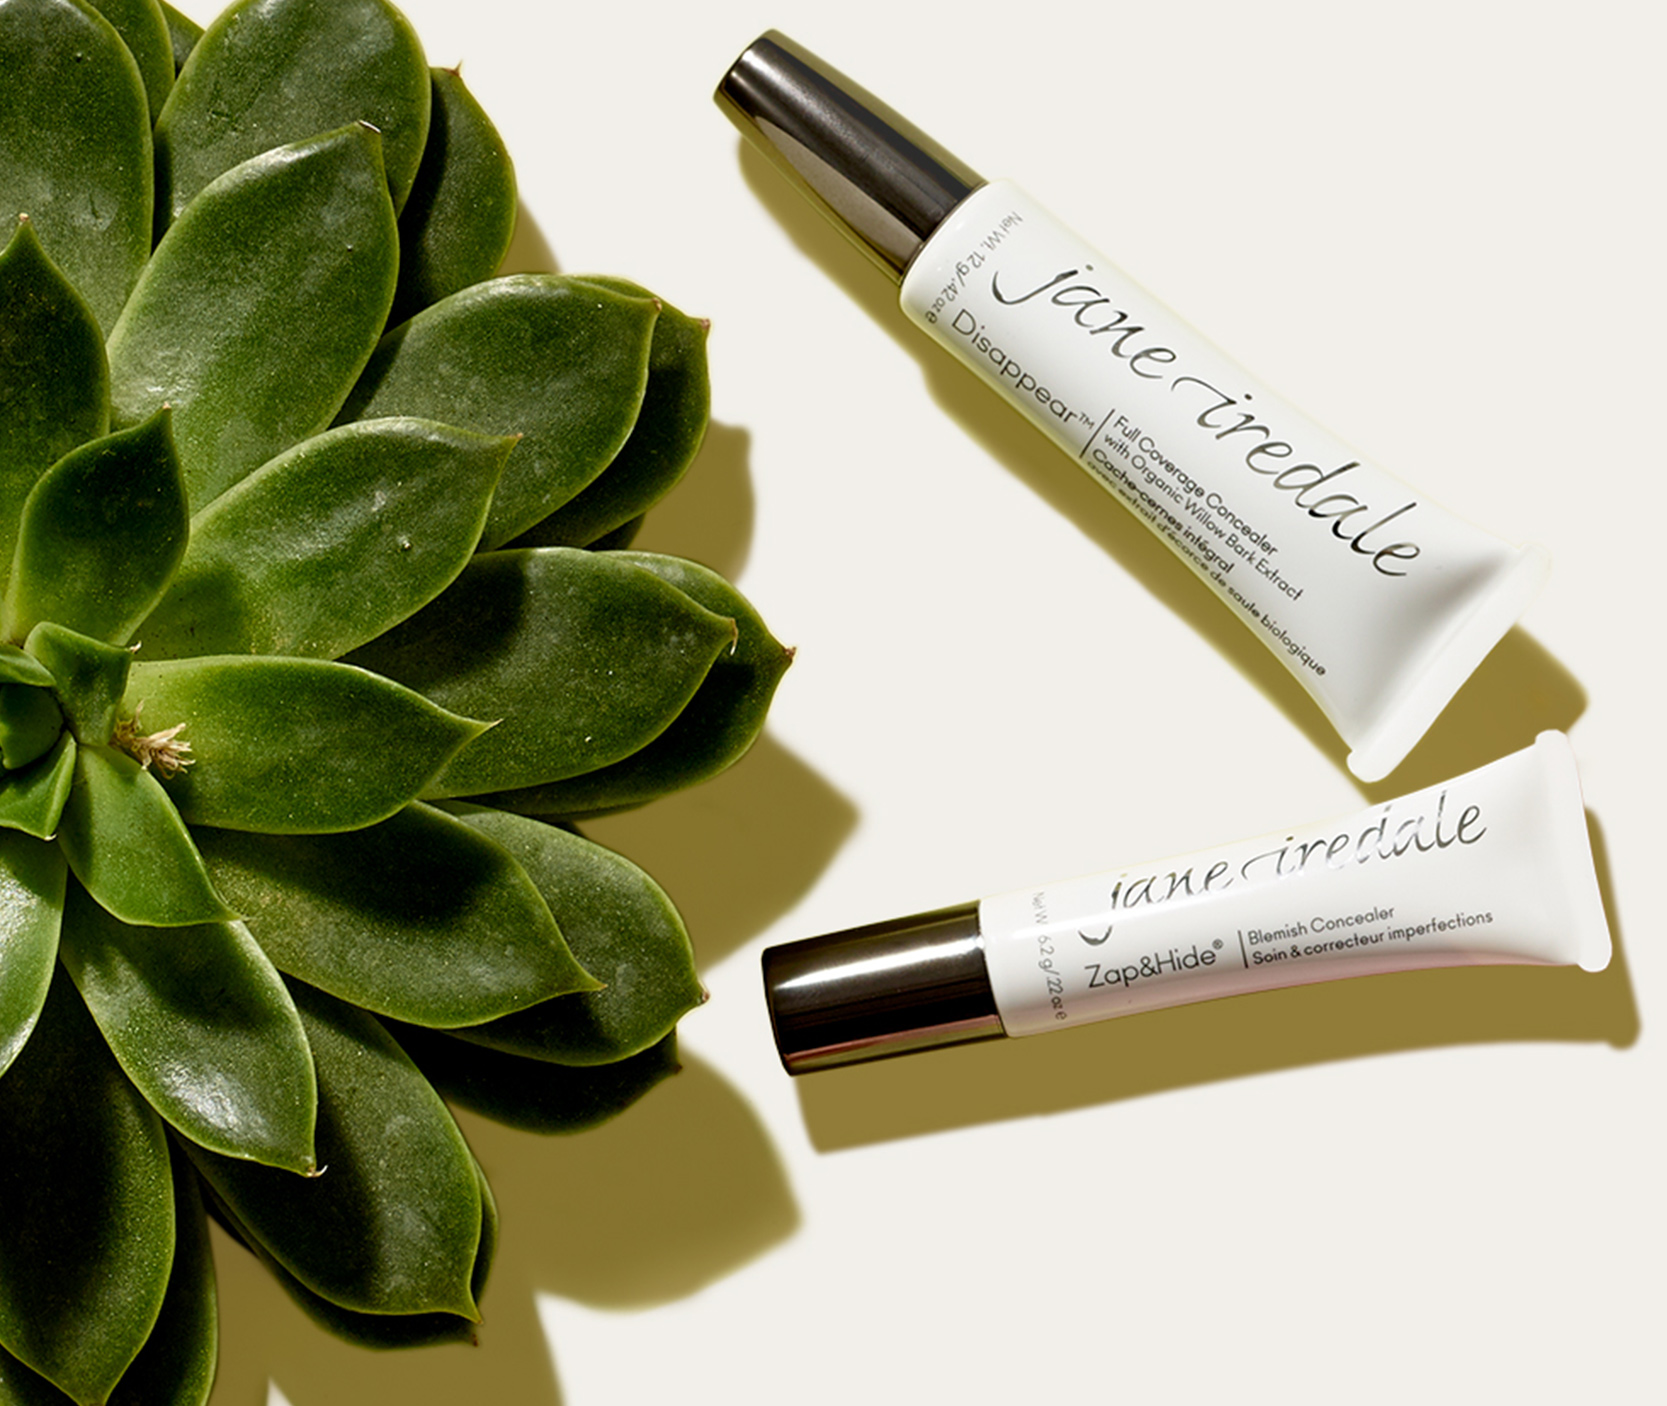 Jane Iredale: Disappear Full Coverage Concealer